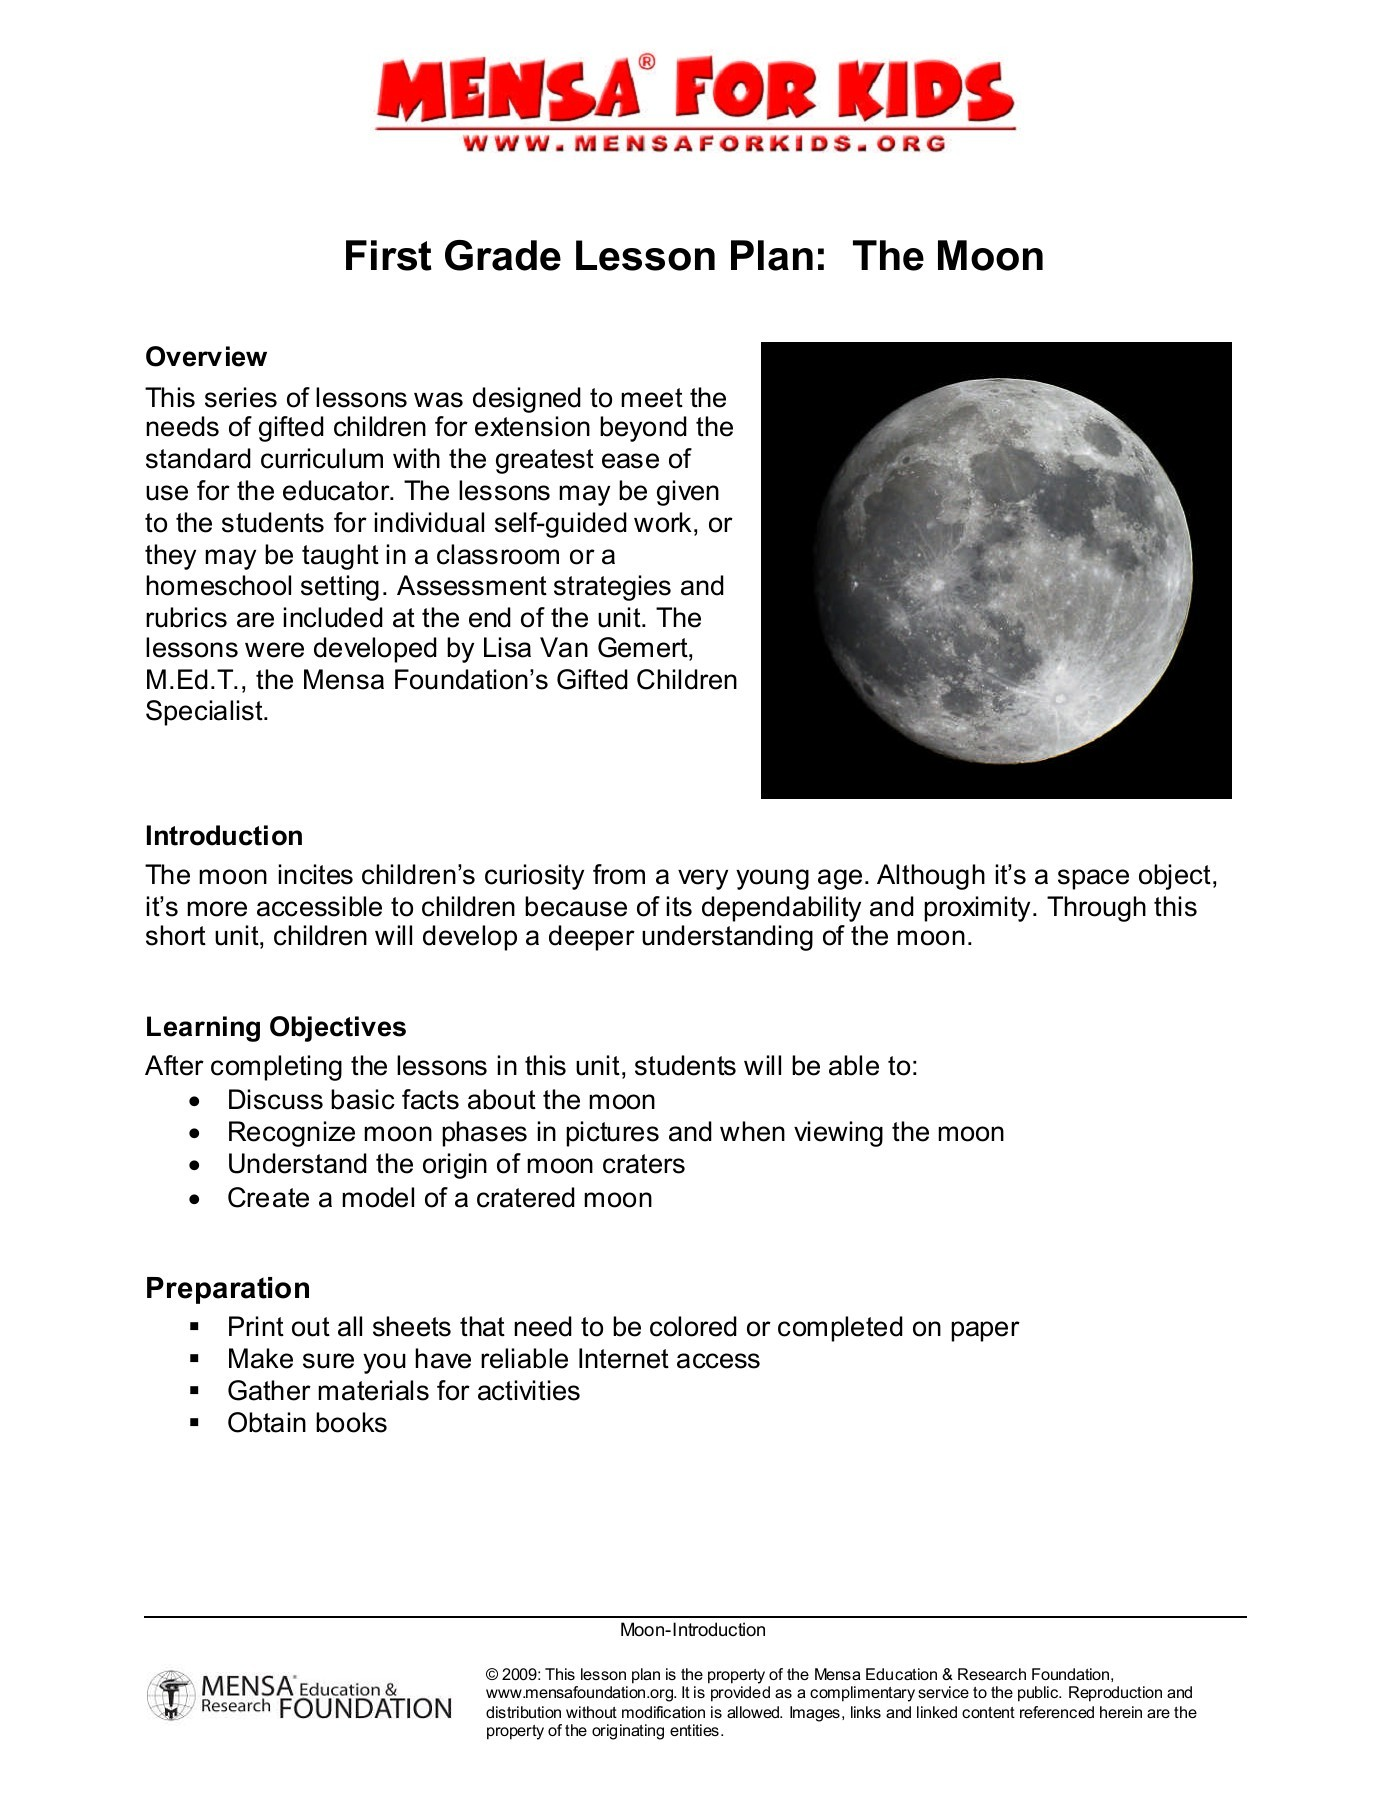 hight resolution of First Grade Lesson Plan about the Moon - American Mensa